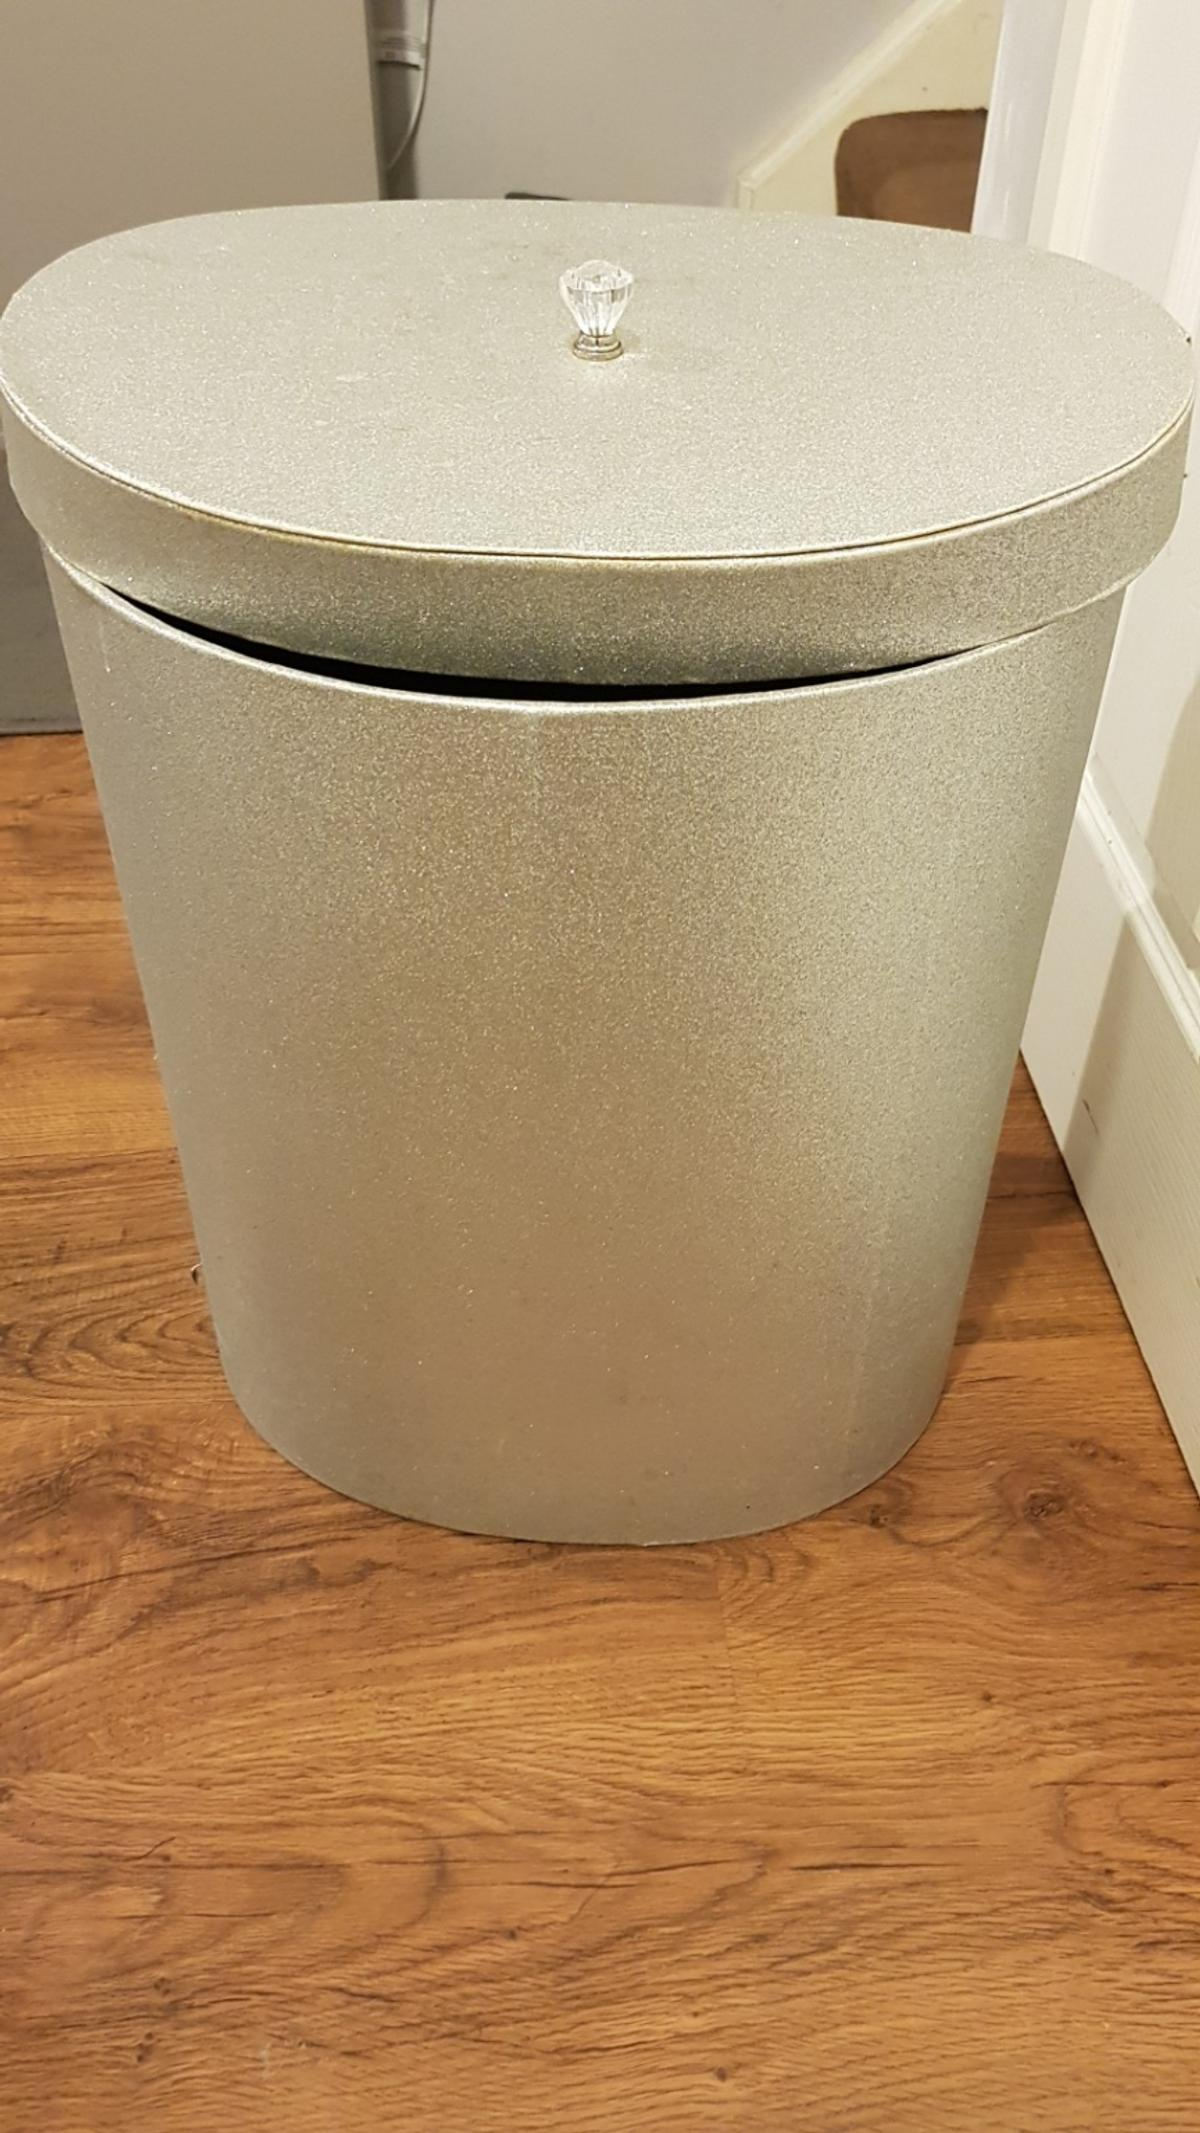 Metal Wash Bin Silver Glitter Laundry Bin Basket With Lid In B70 Sandwell For